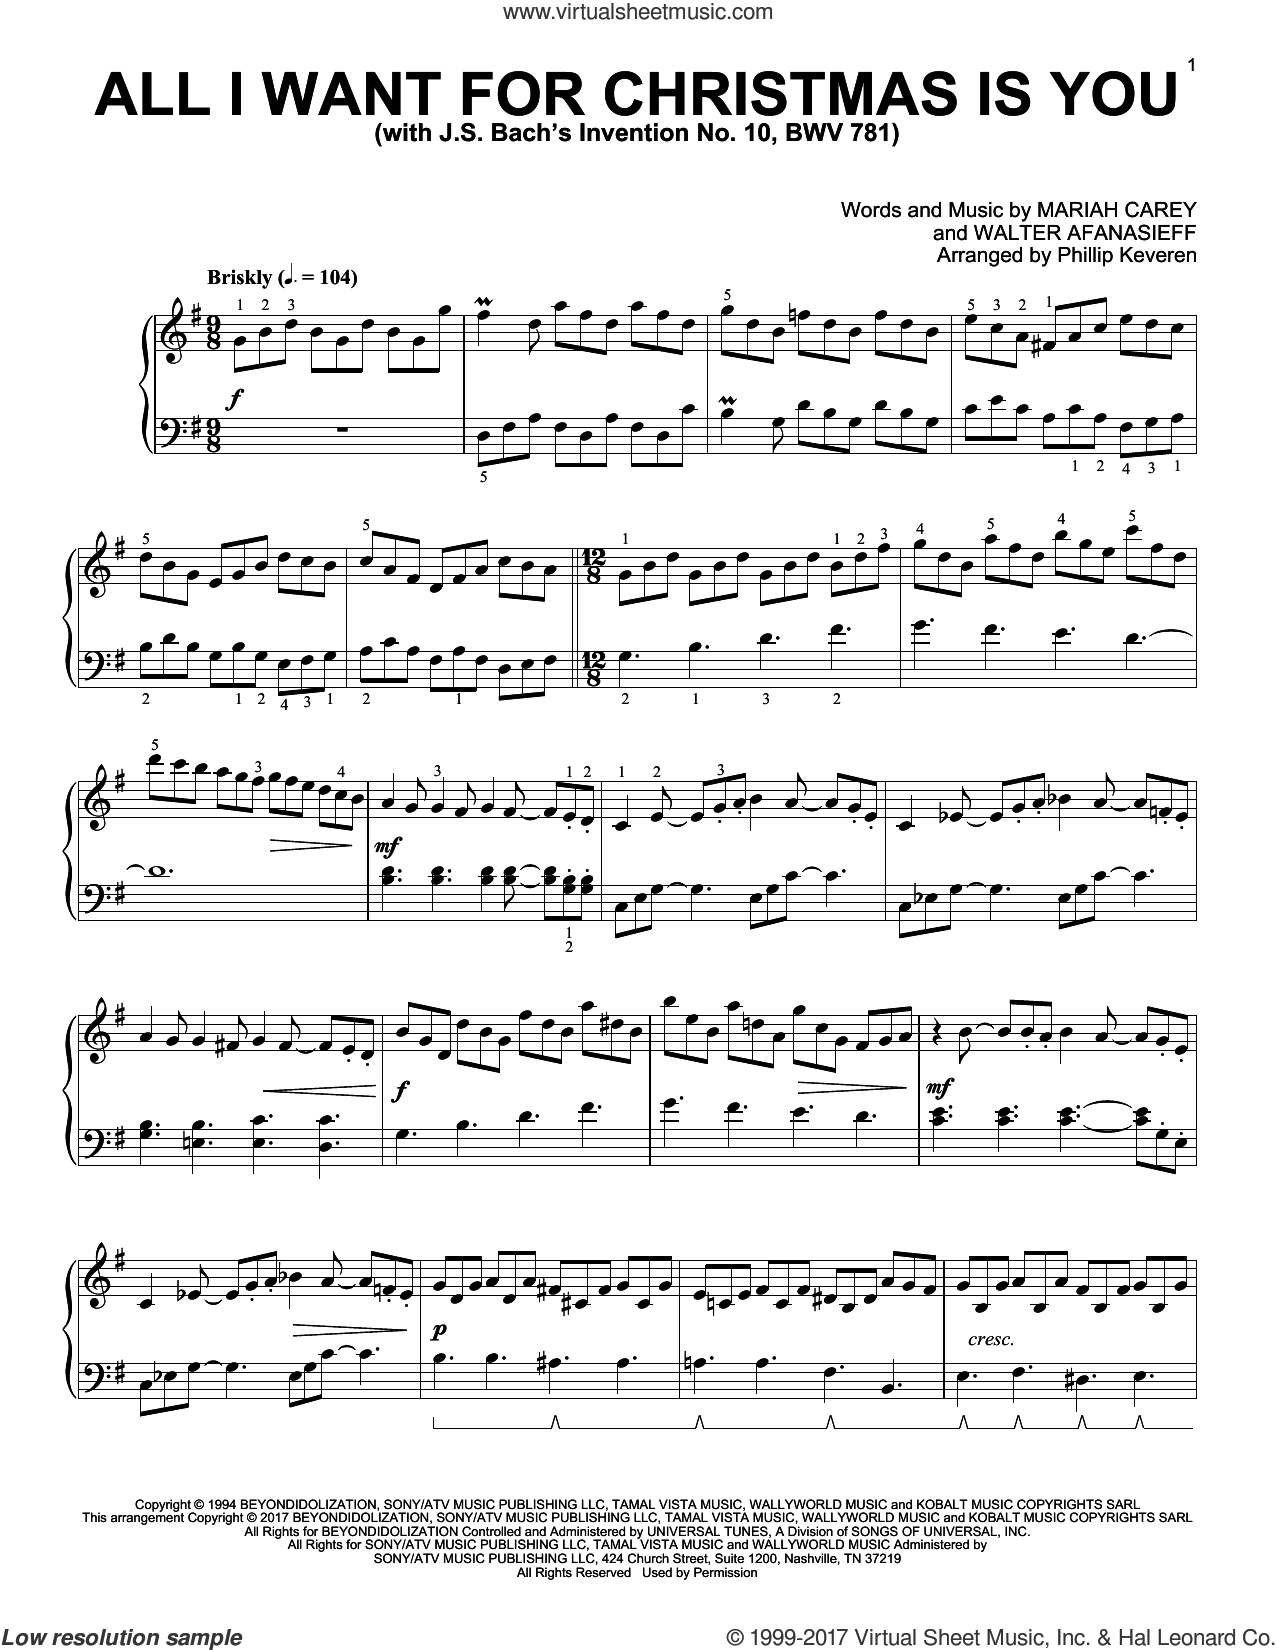 All I Want For Christmas Is You [Classical version] (arr. Phillip Keveren) sheet music for piano solo by Mariah Carey, Phillip Keveren and Walter Afanasieff, intermediate skill level